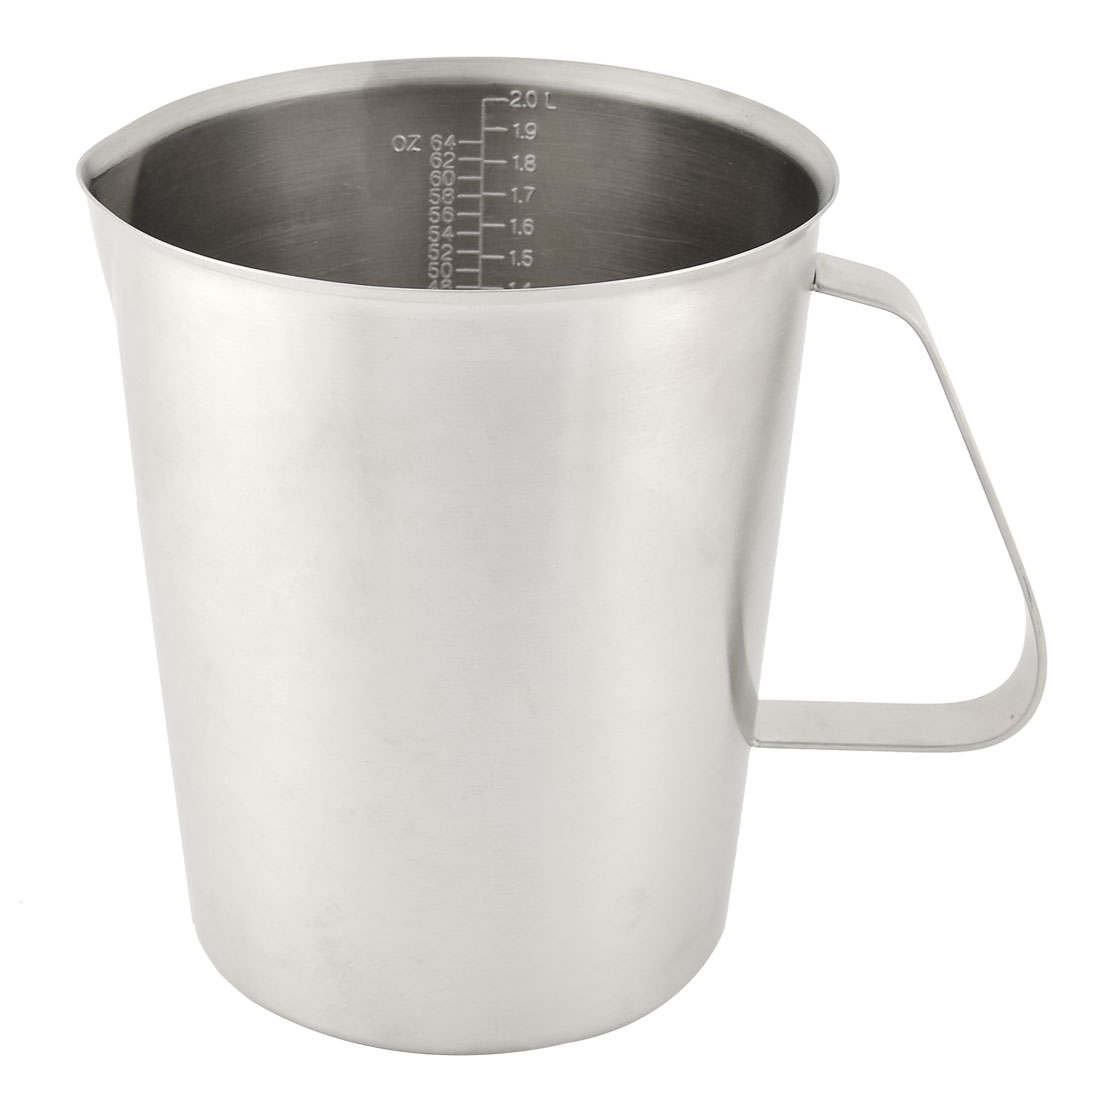 Home Kitchen Stainless Steel Water Oil Liquid Milk Powder Measuring Cup Mug Silver Tone 2000ml w Graduated Scale